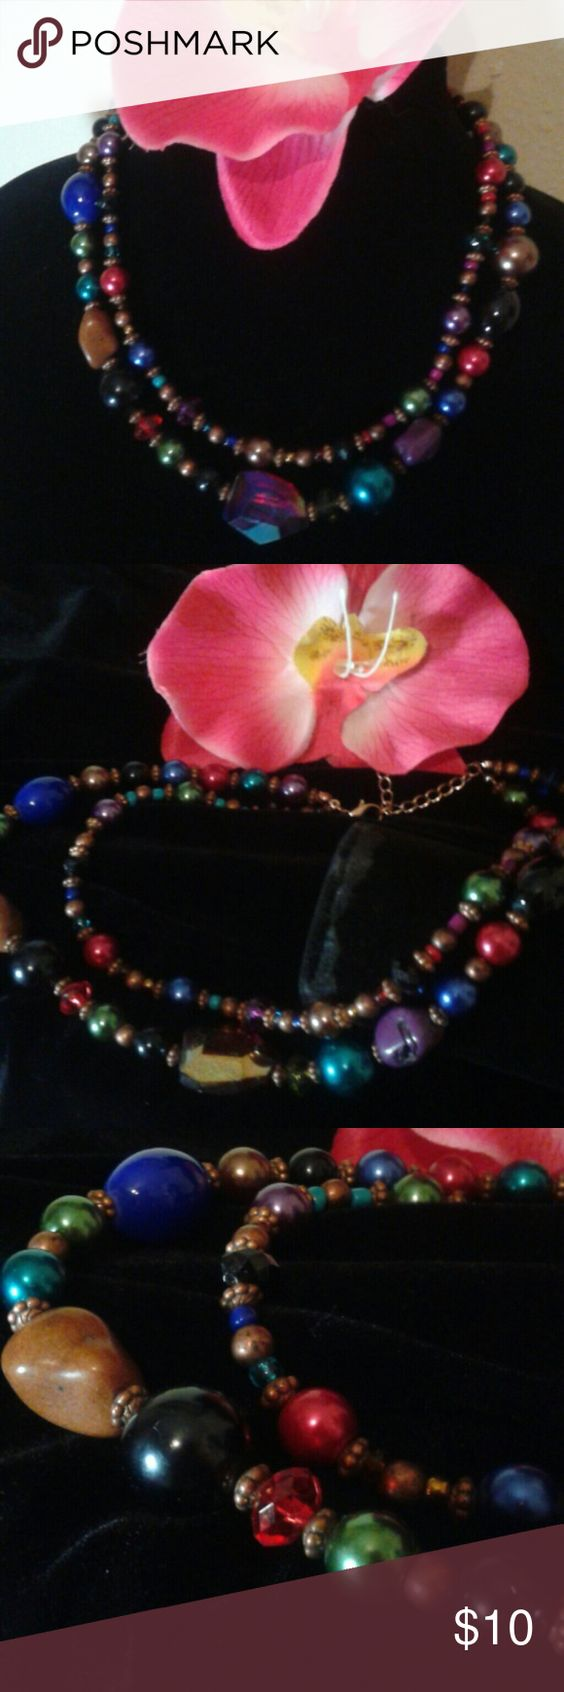 Charming Charlie double-stranded beaded necklace Multi-colored strand beaded necklace two strands with bronze accent clasp and chain medium length Charming Charlie Jewelry Necklaces